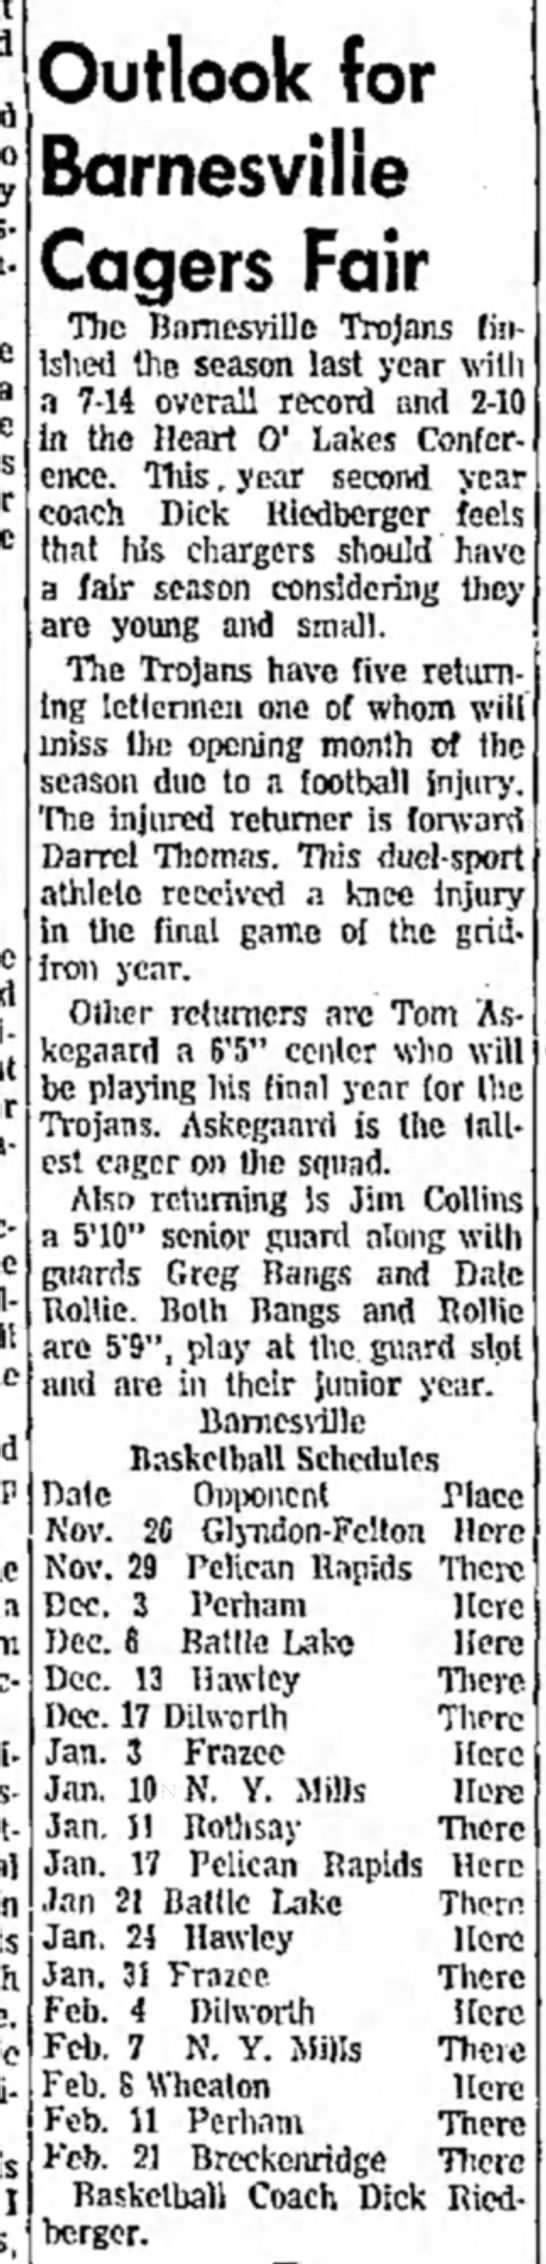 "Daily Journal, Fergus Falls, MN, Nov 19, 1968 - m are bit"", play at tne guard si nnd are ' in..."